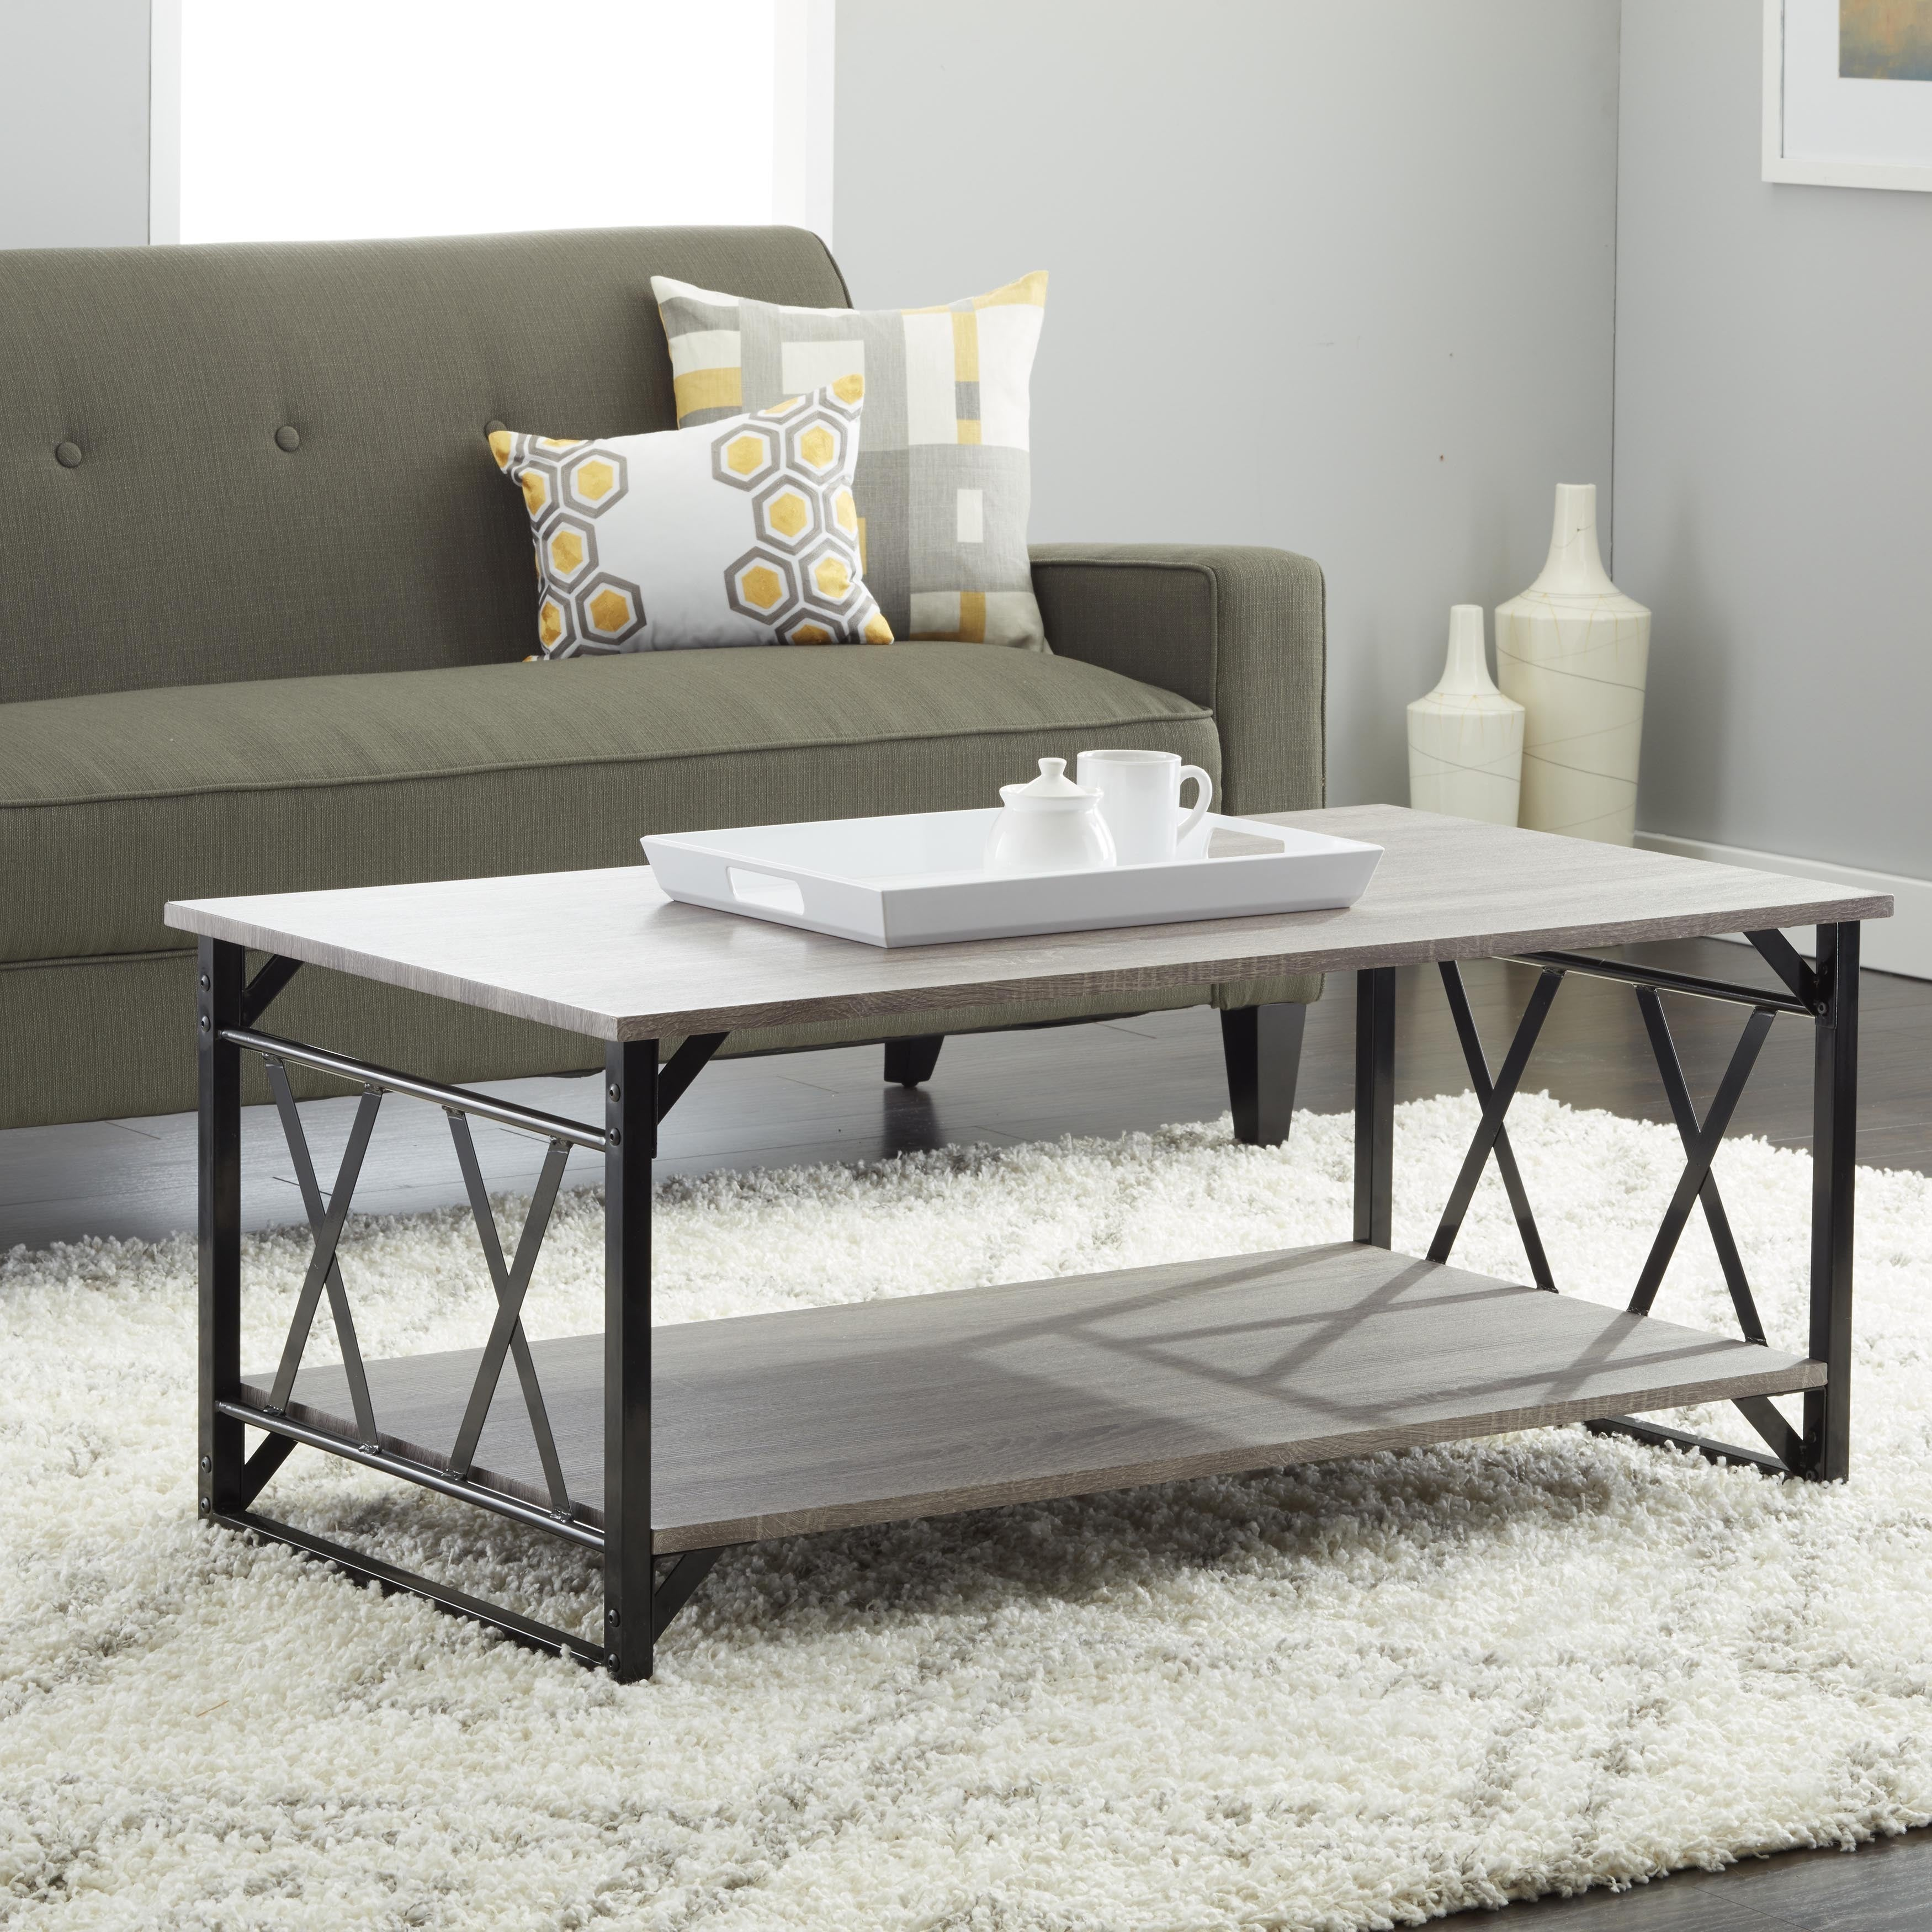 Charmant Shop Reclaimed Style Grey Coffee Table With Double U0027Xu0027 Frame   Free  Shipping Today   Overstock.com   8847268